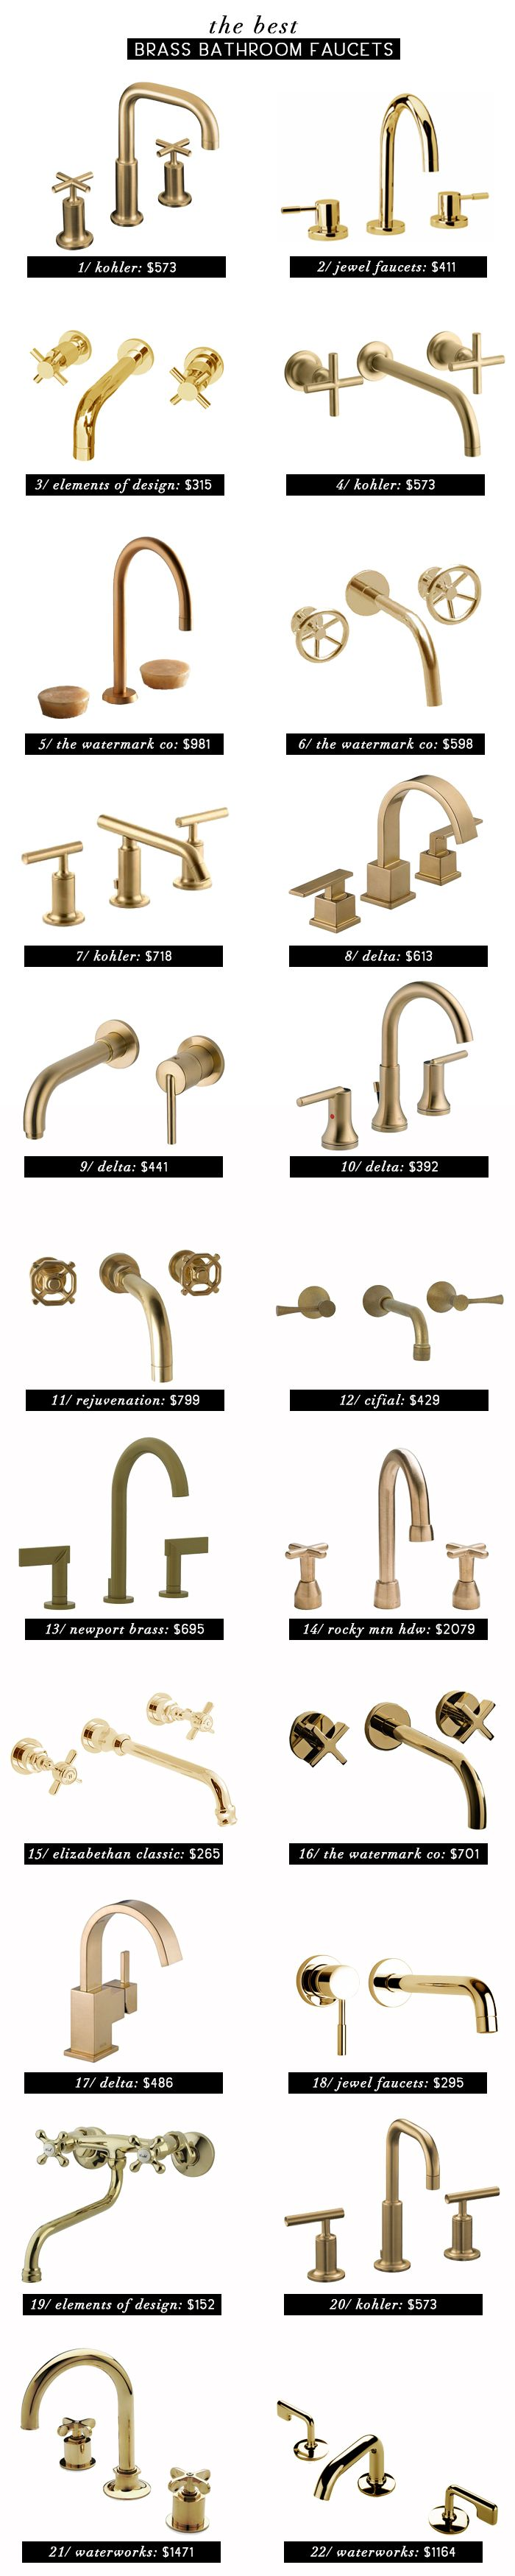 Style by Emily Henderson - Brass Faucets Roundup